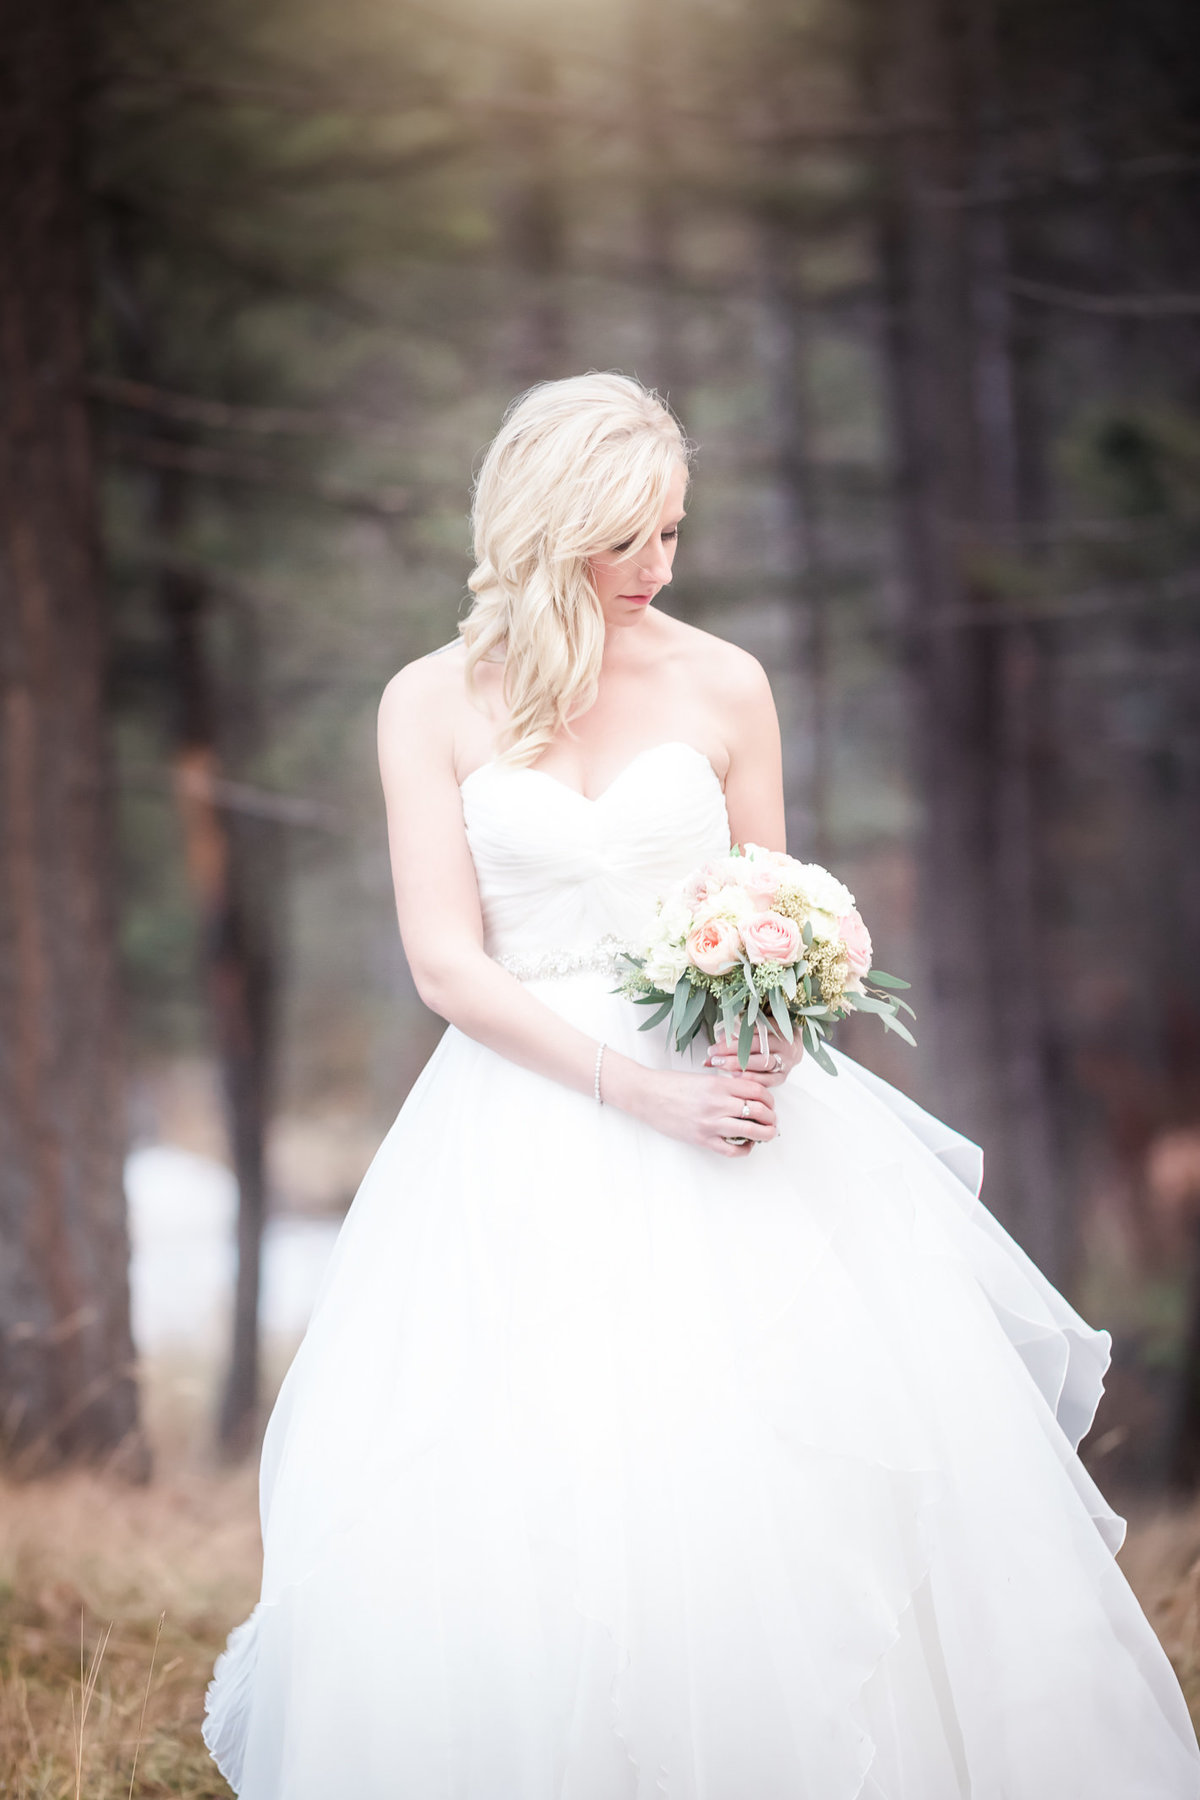 Victoria Blaire Best Kelowna Okanagan Wedding Photographer Whimsical|Romantic|Sentimental-17